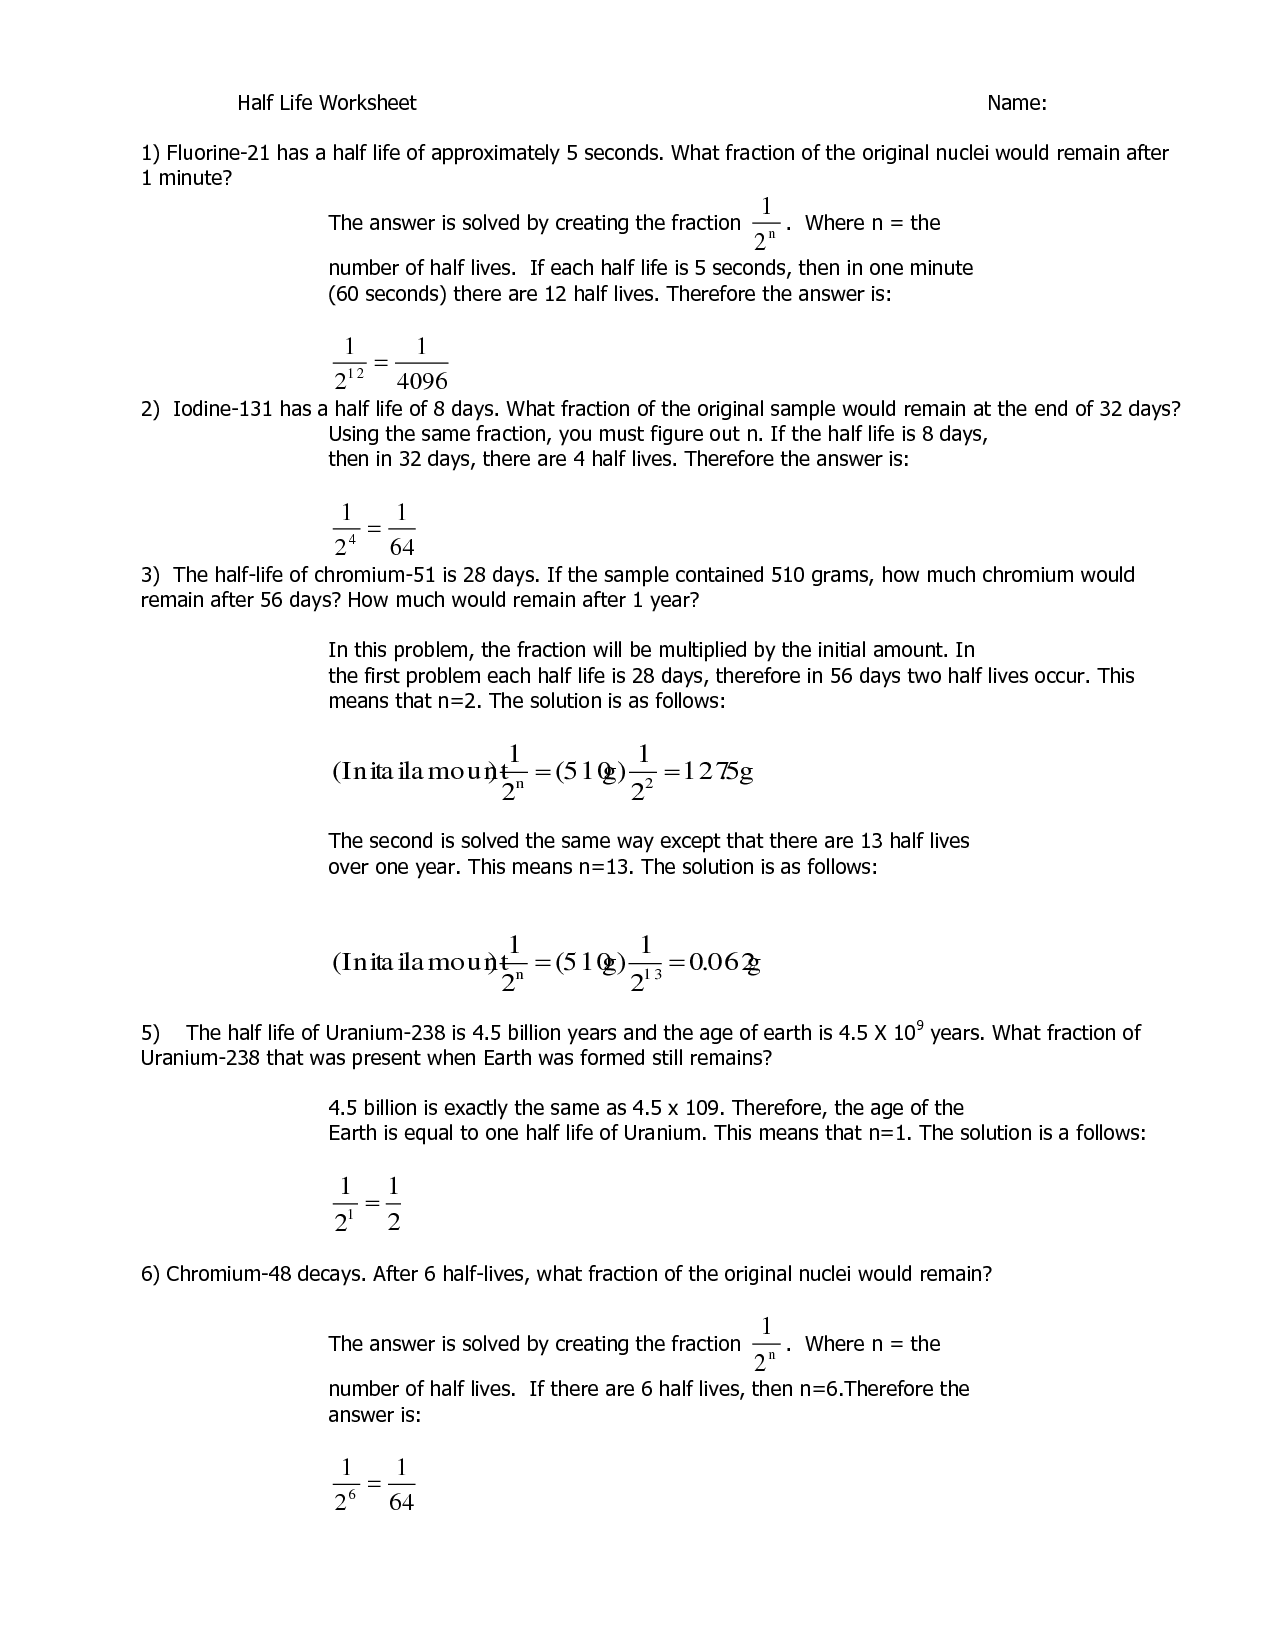 Half Life Calculations Worksheet Key